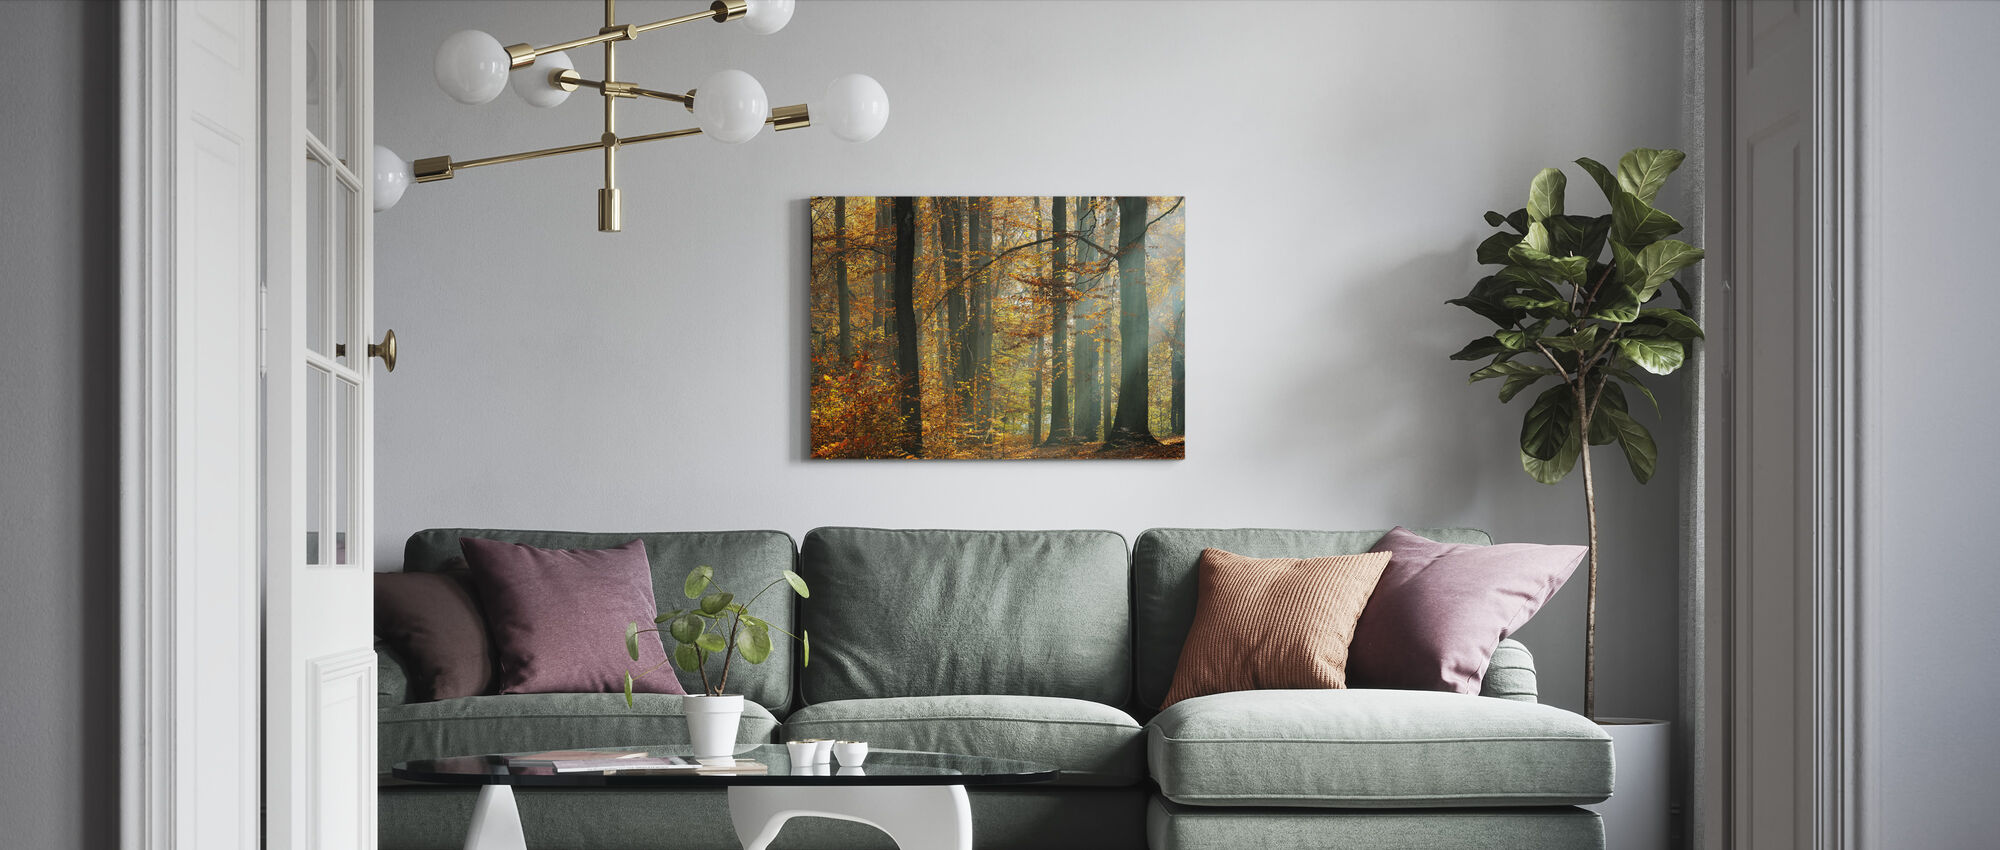 Sunbeams in a Colorful Autumnal Forest - Canvas print - Living Room